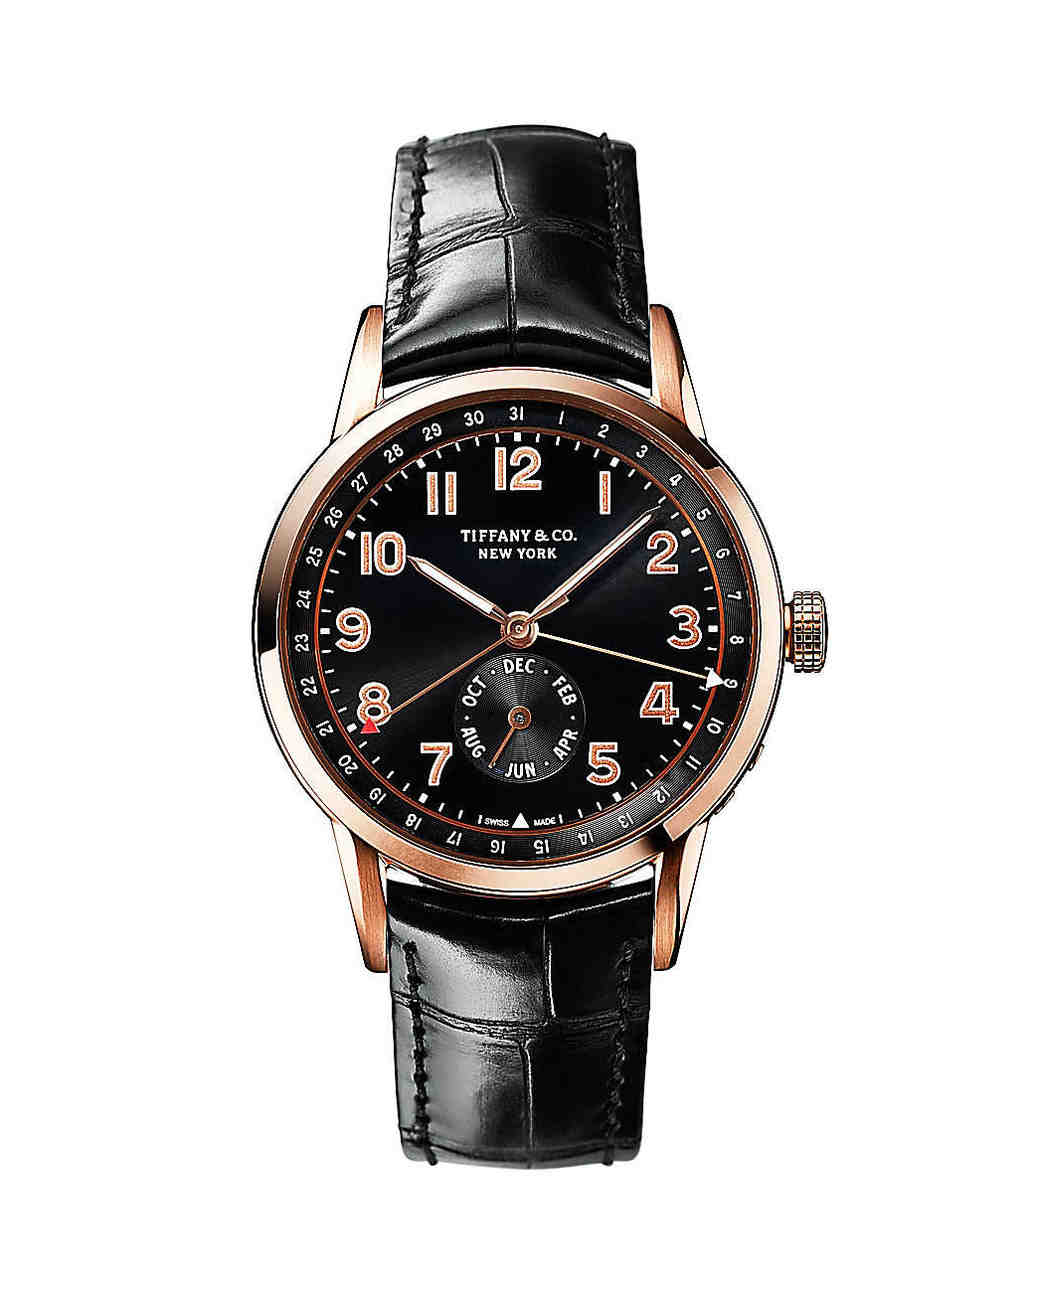 Tiffany & Co. CT60 Annual Calendar Watch in Rose Gold